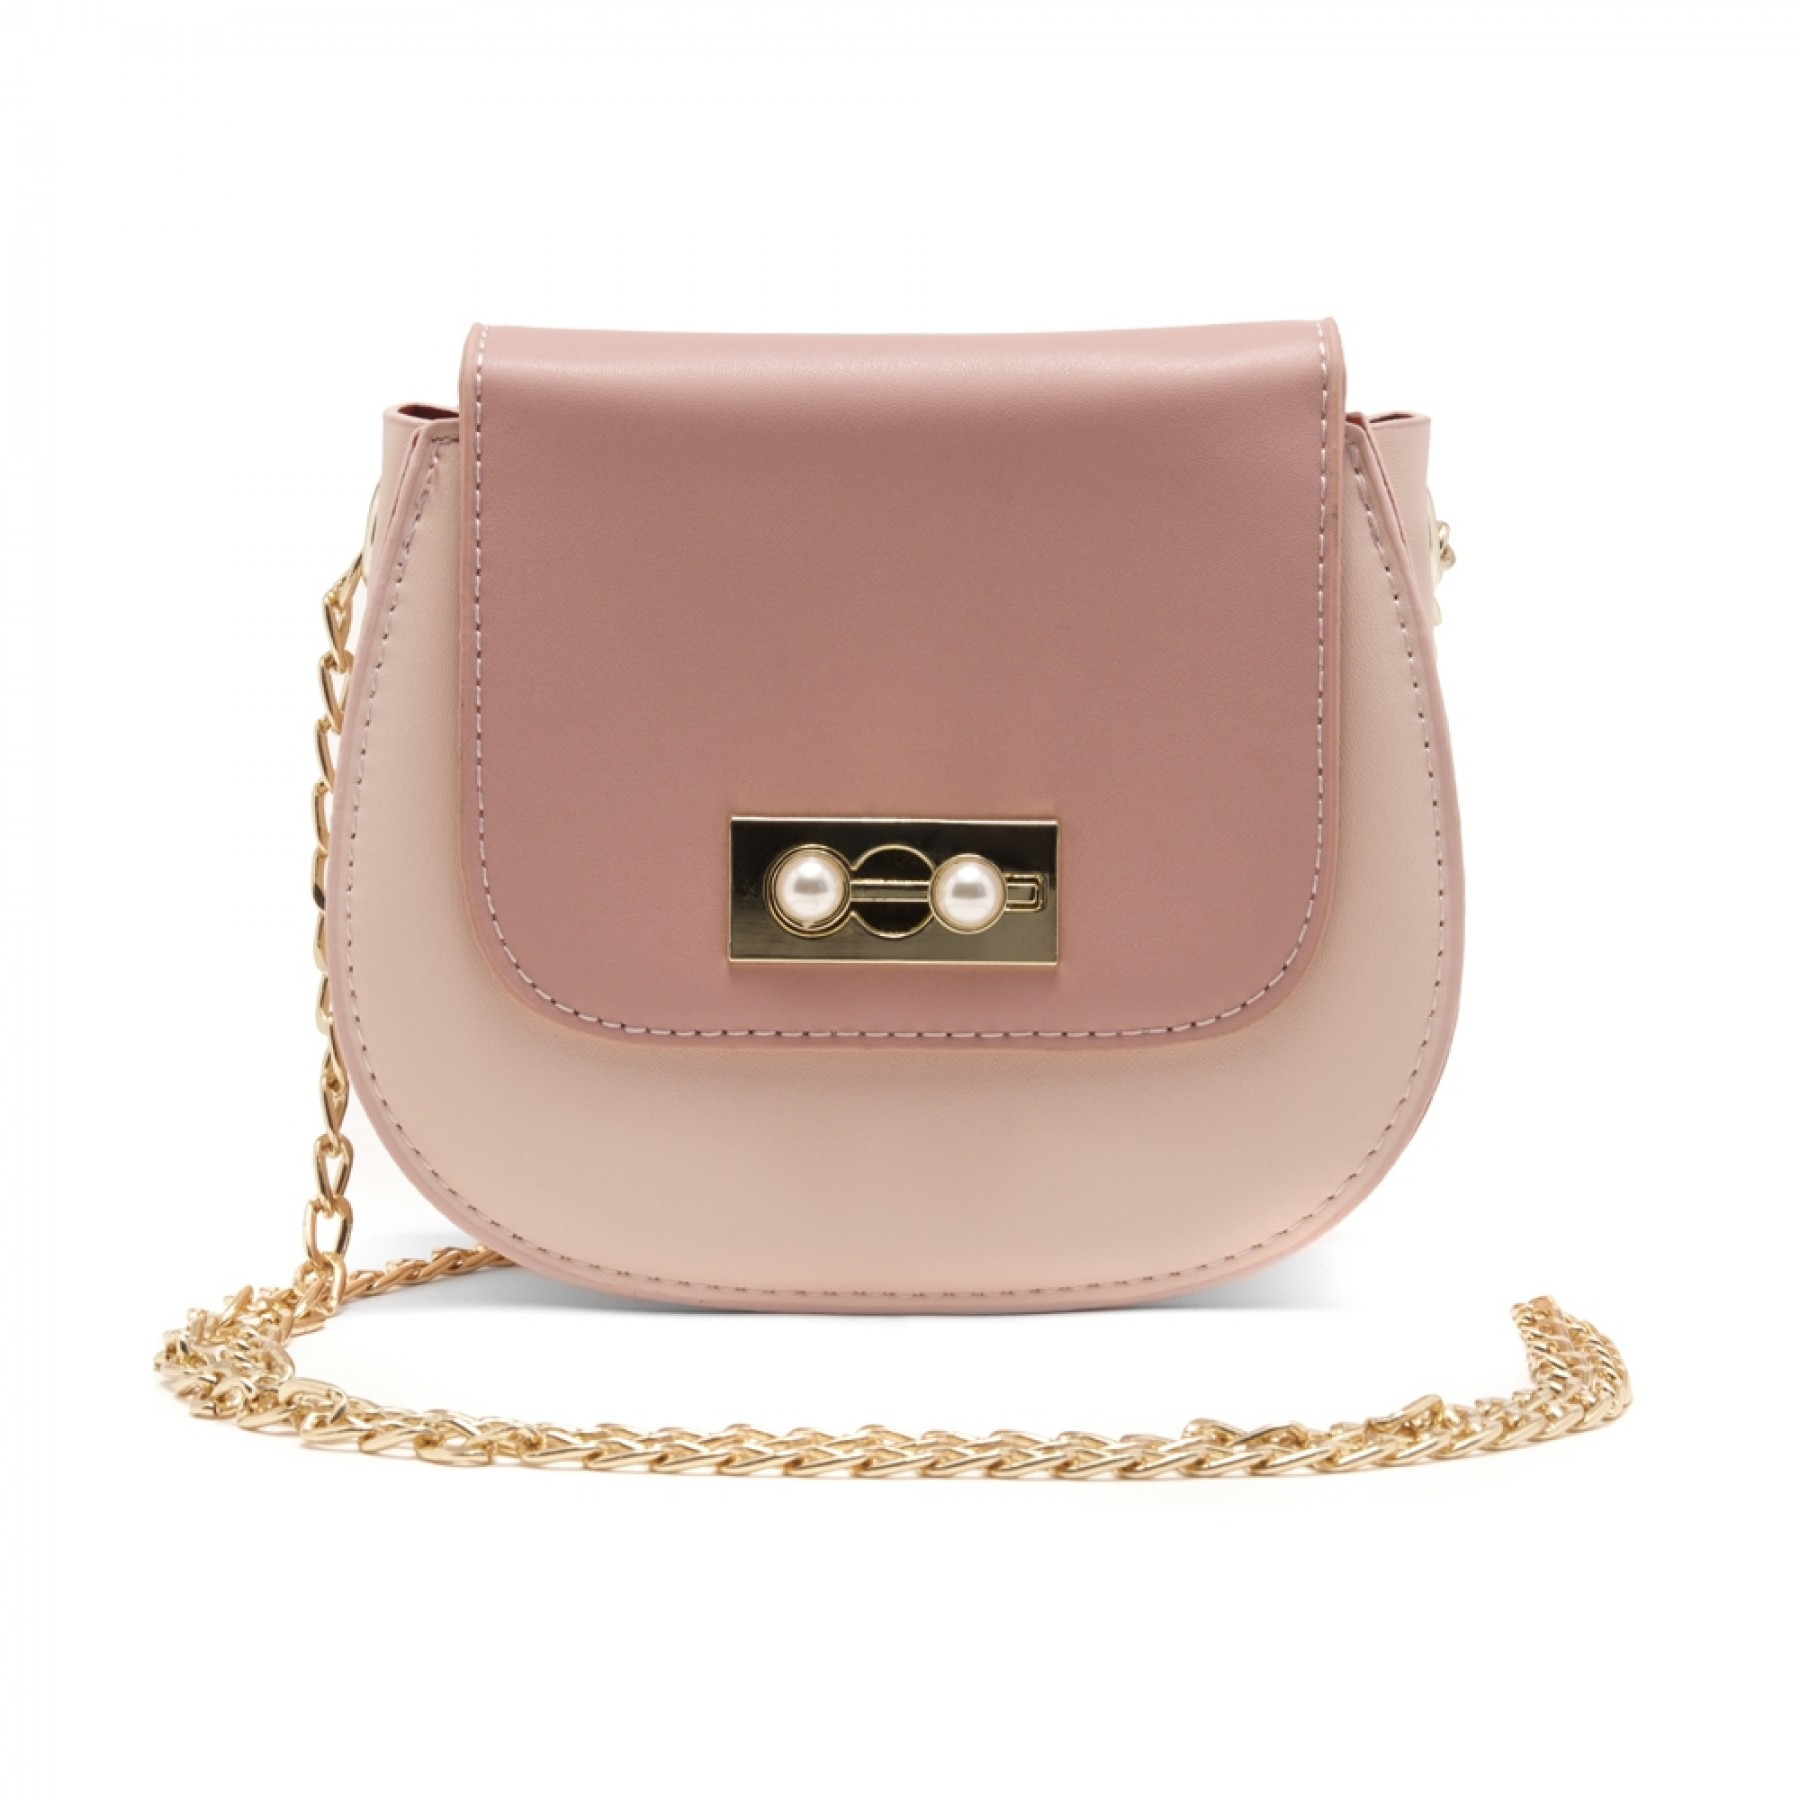 SZ17-LH2-16581 - Women's Fashion Design Mini Crossbody Bag (Pink)